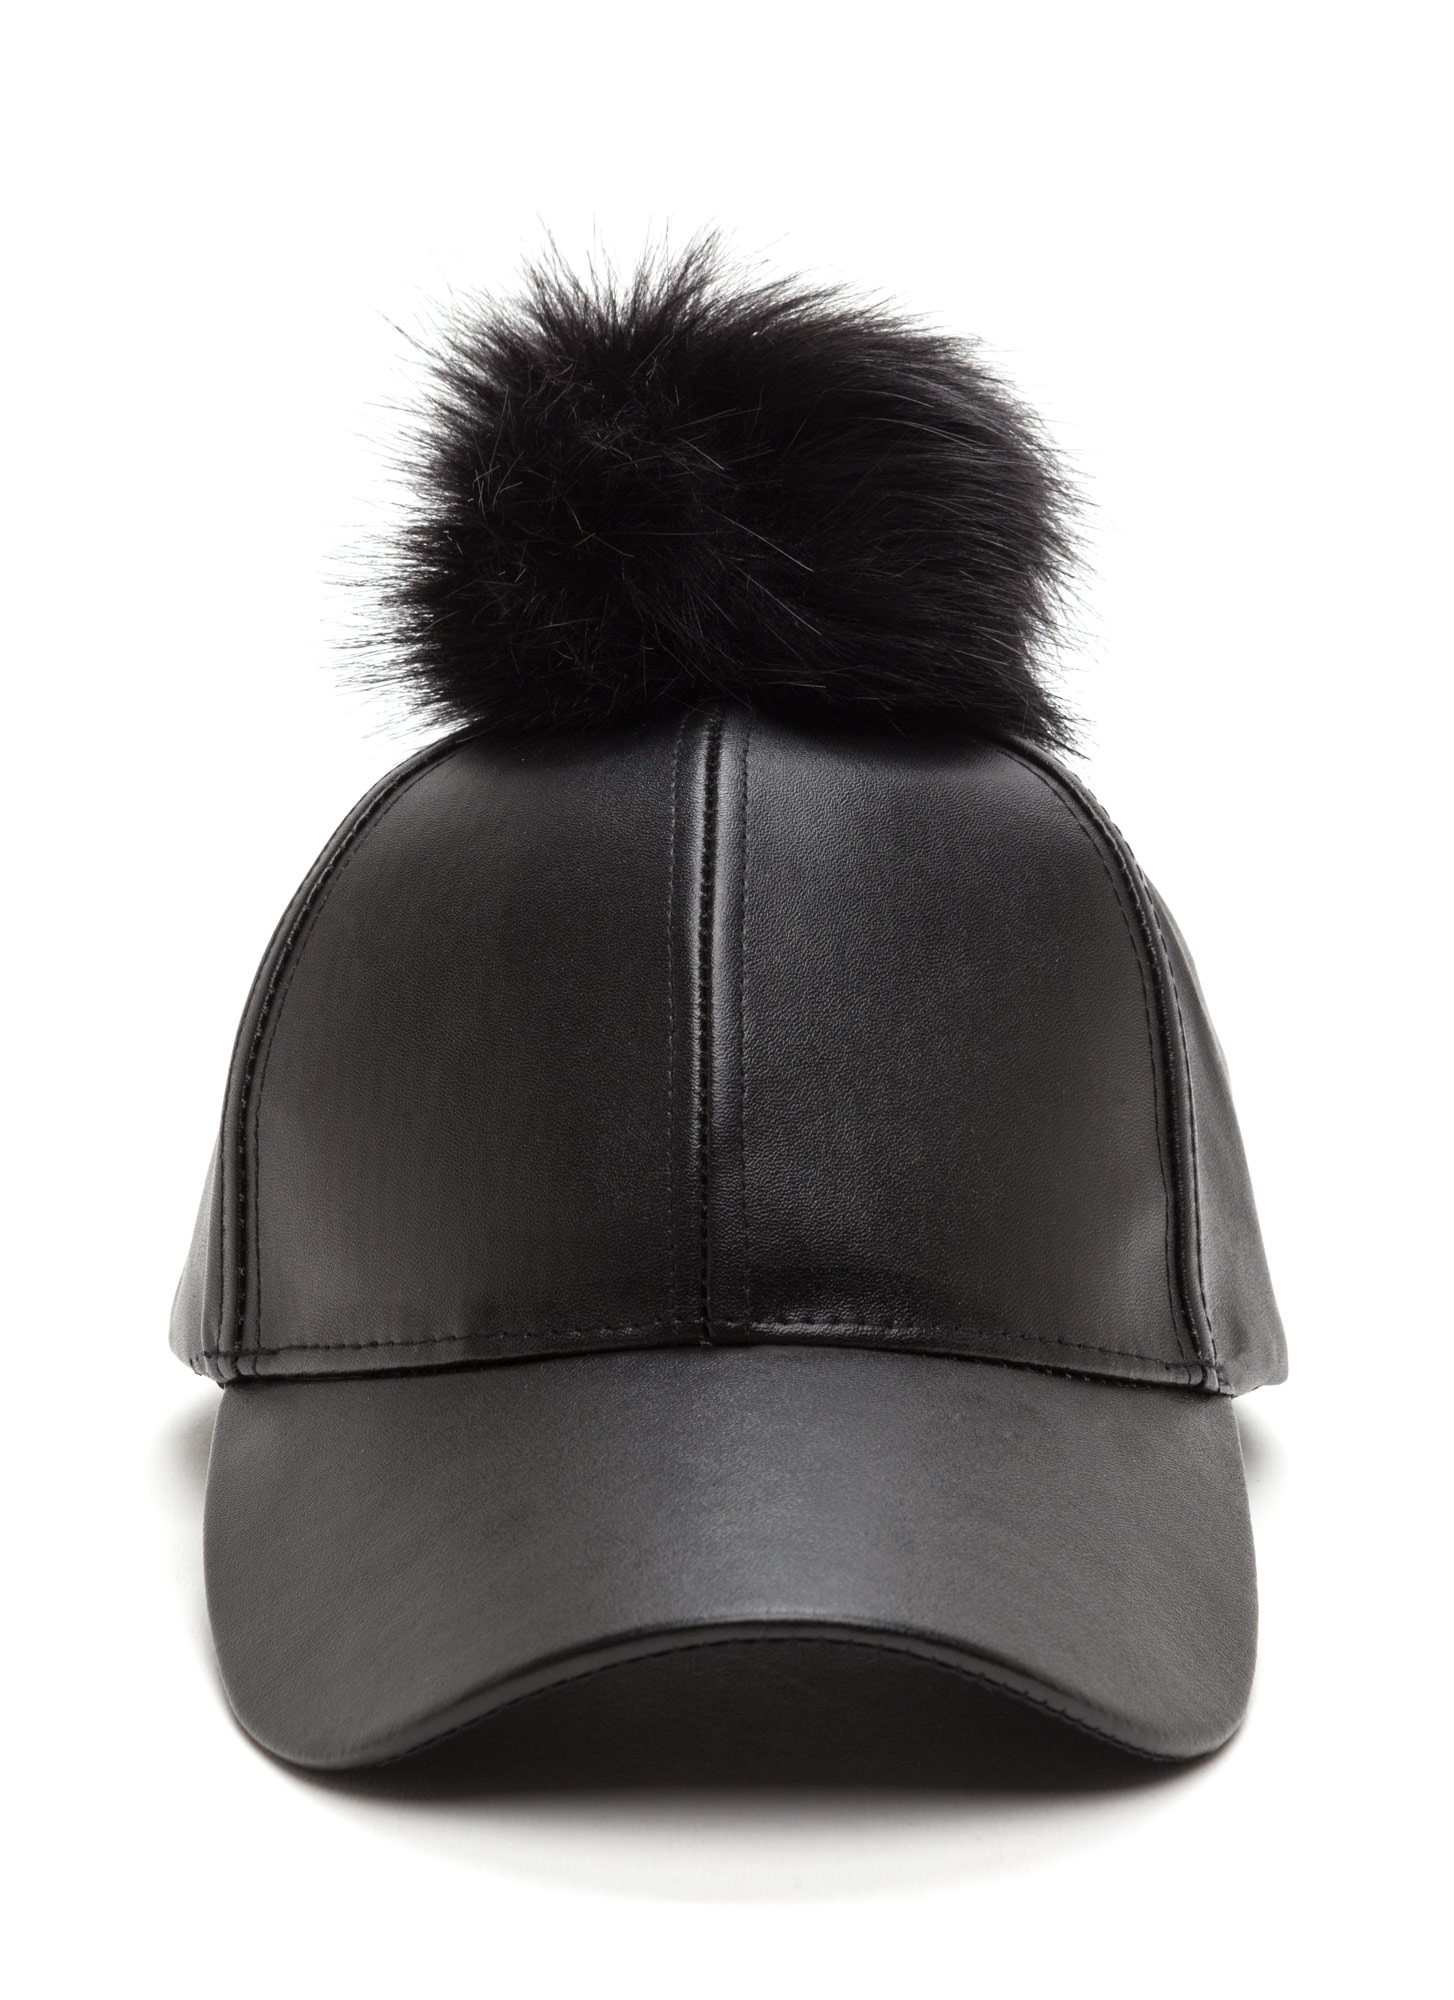 Up The Fluff Faux Leather Hat